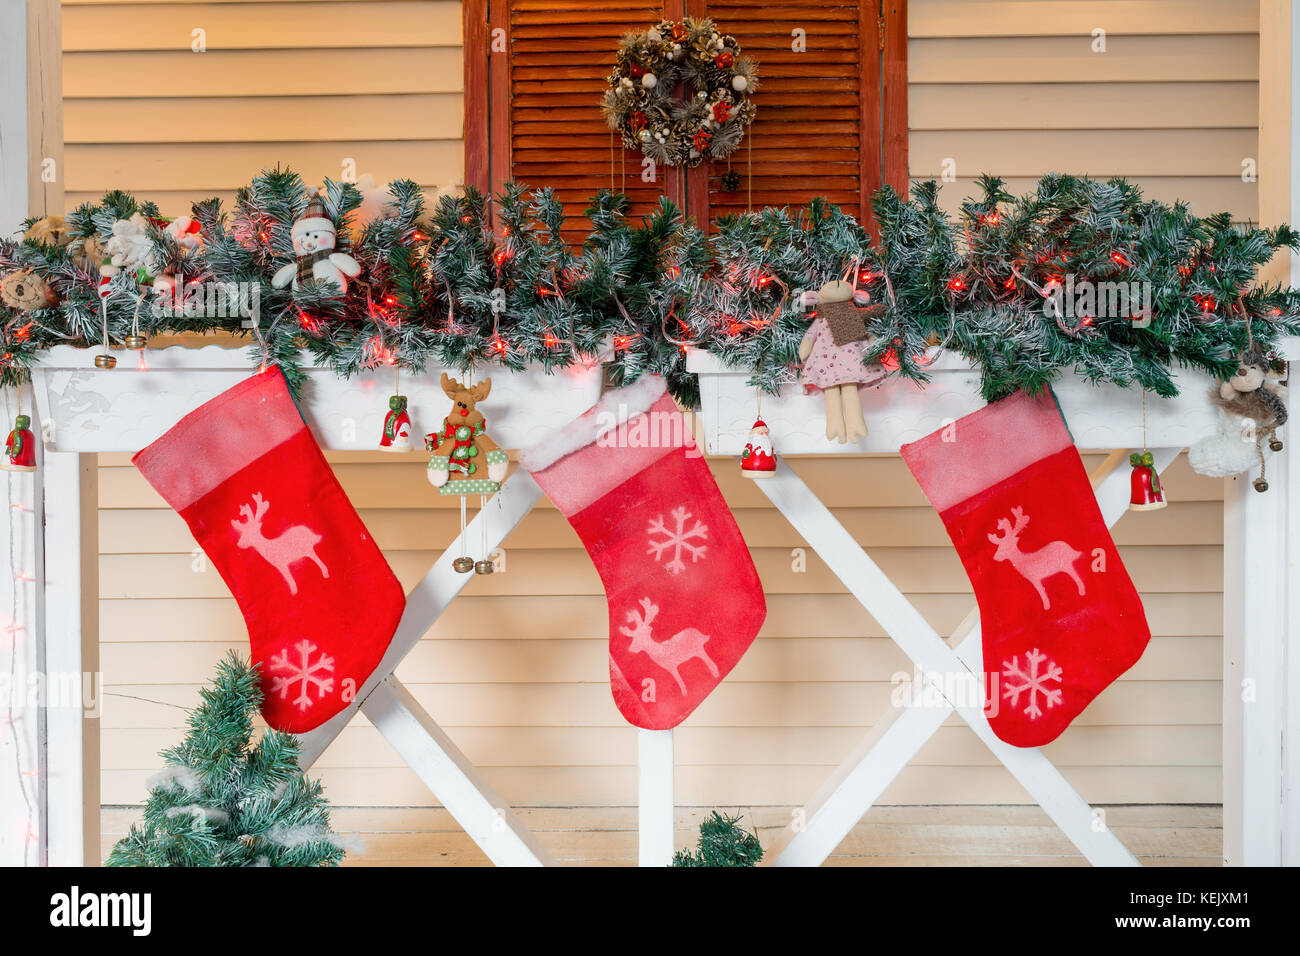 Christmas sock and decoration on wood. - Stock Image